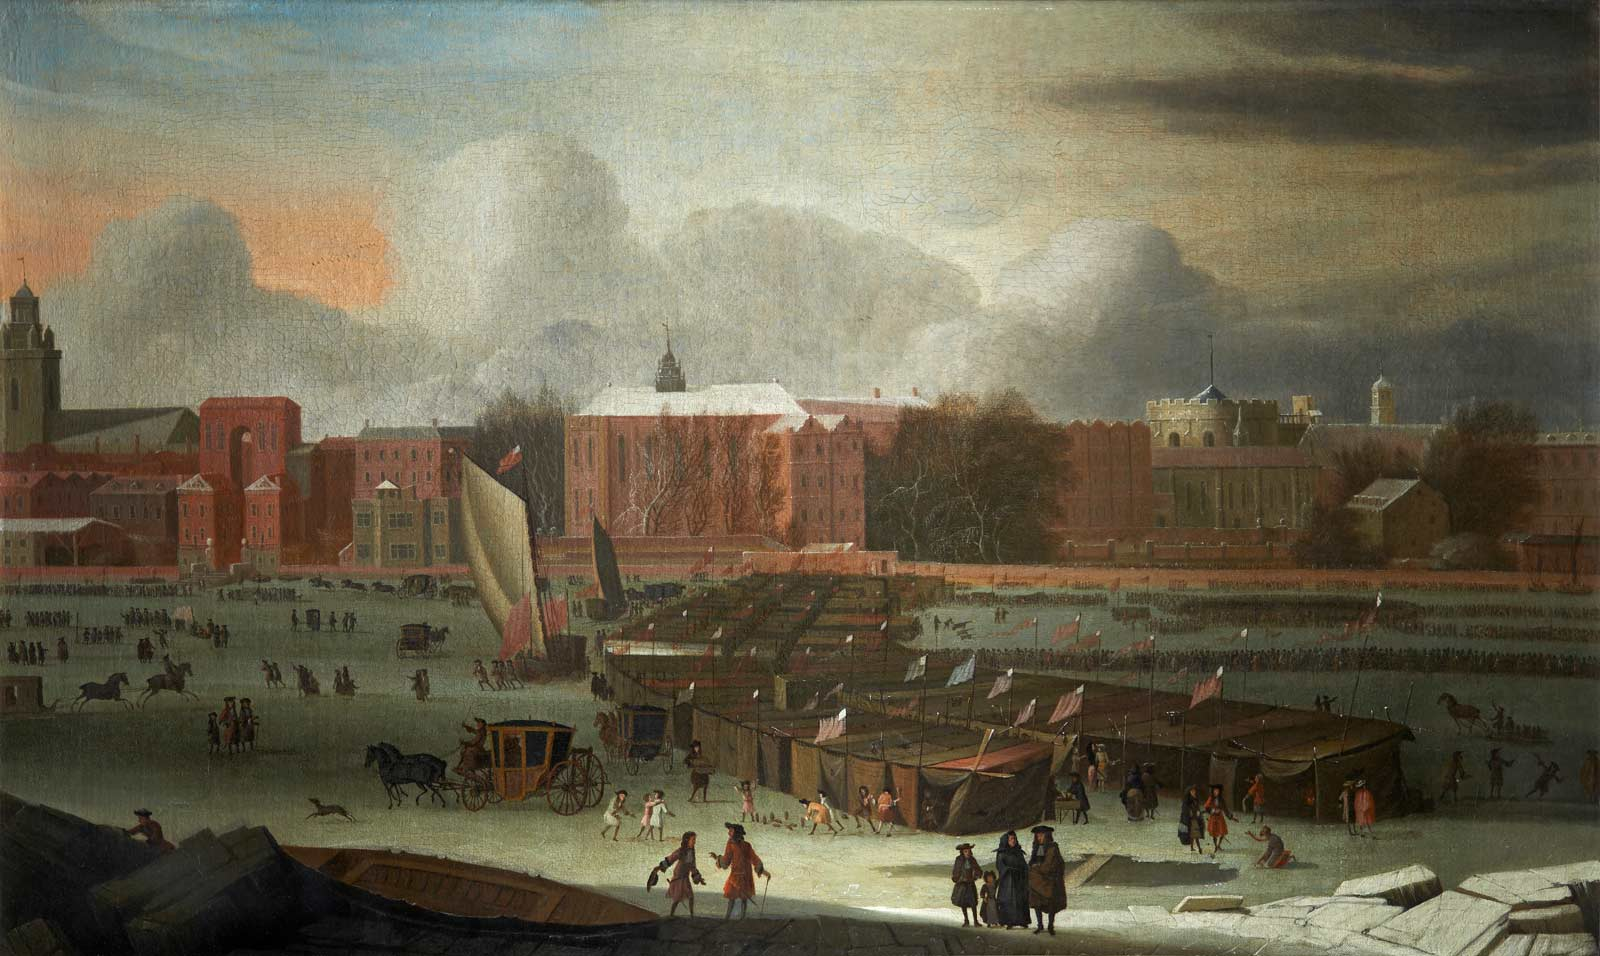 A Frost Fair on the Thames at Temple Stairs. January 1684. The frost fair scene shows a line of booths on frozen Thames in centre, coaches, sledges, sedan-chairs & citizens are shown on ice. Also a game of ninepins in progress.In the foreground centre and nearby is gaping hole in ice. You can see in the painting from left to right; St. Clement Danes, Arundel St., Essex Bldgs., Essex Stairs, Middle Temple Hall, Temple Stairs, Crown Office Row, Temple church, Serjeant's Inn Hall, precursor of Paper Buildings and on the extreme right King's Bench Walk.